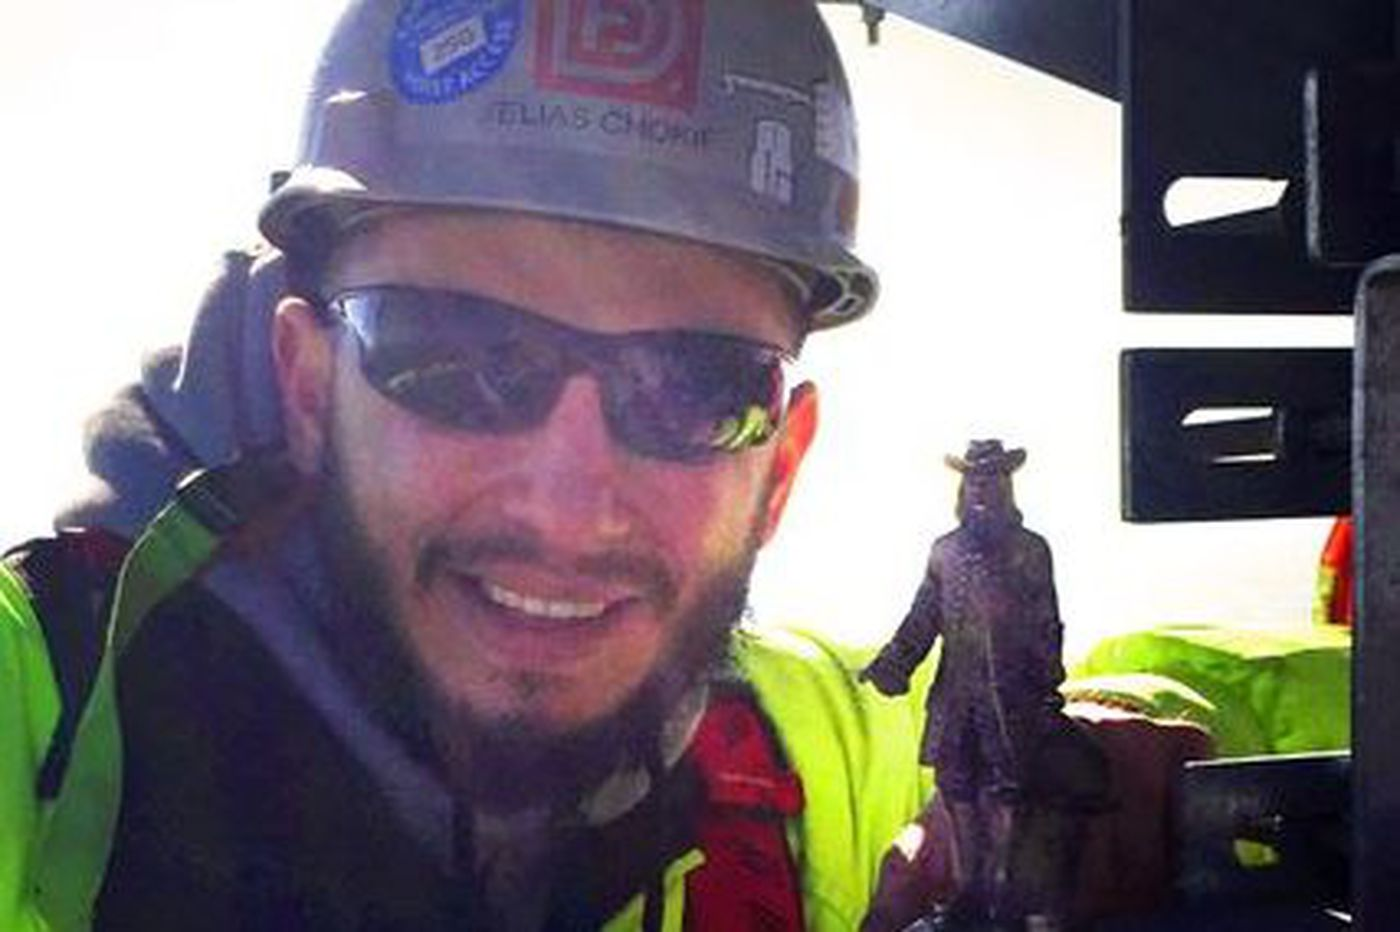 Ironworkers plant Billy Penn atop new Comcast tower to help Eagles avoid curse